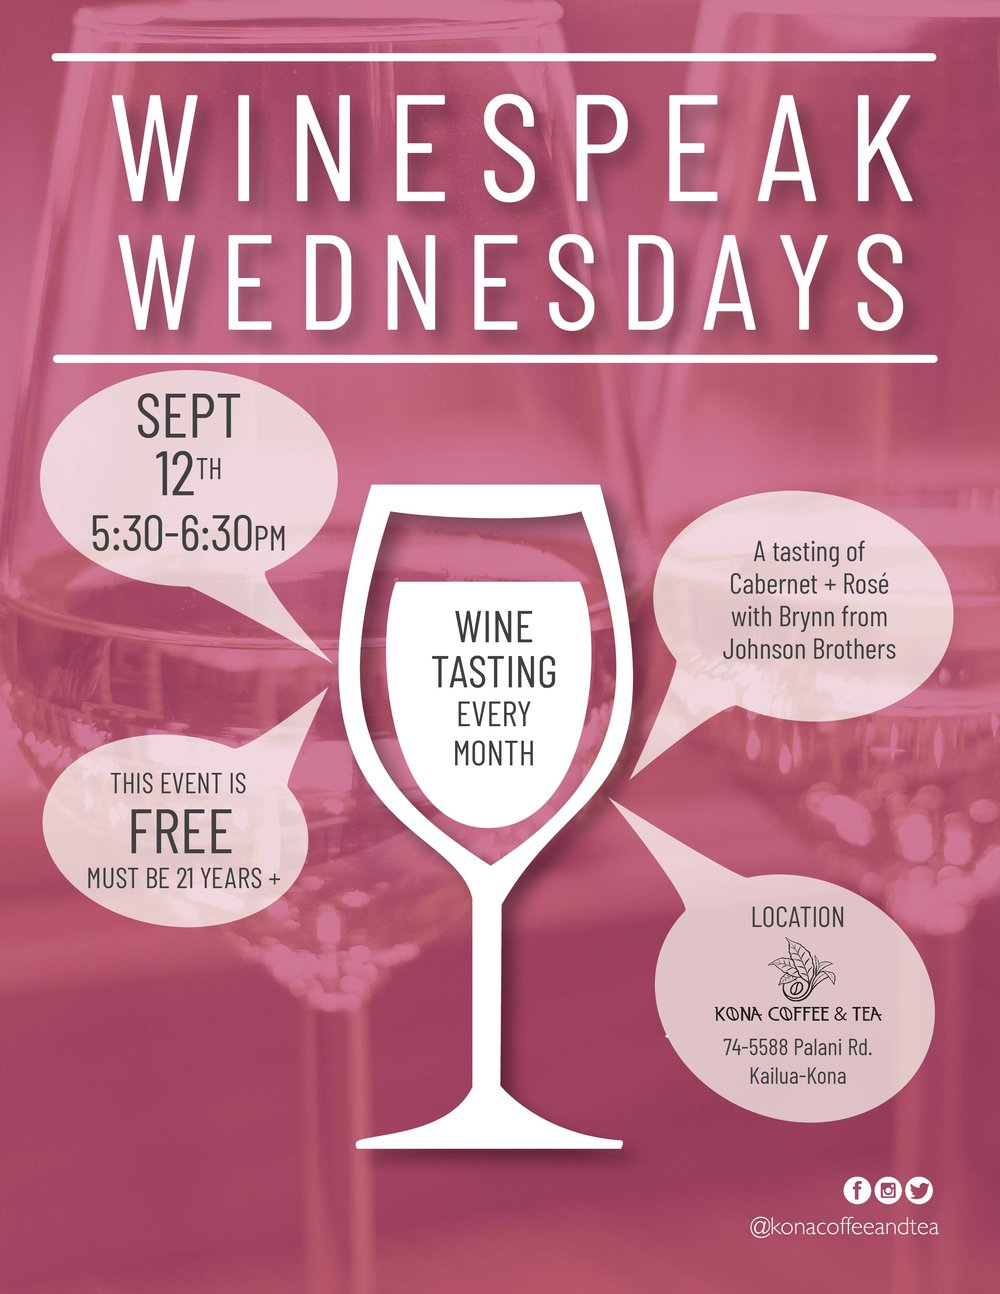 WineSpeak Wednesdays_9.12.18_KCTC 11x17 poster-01.jpg